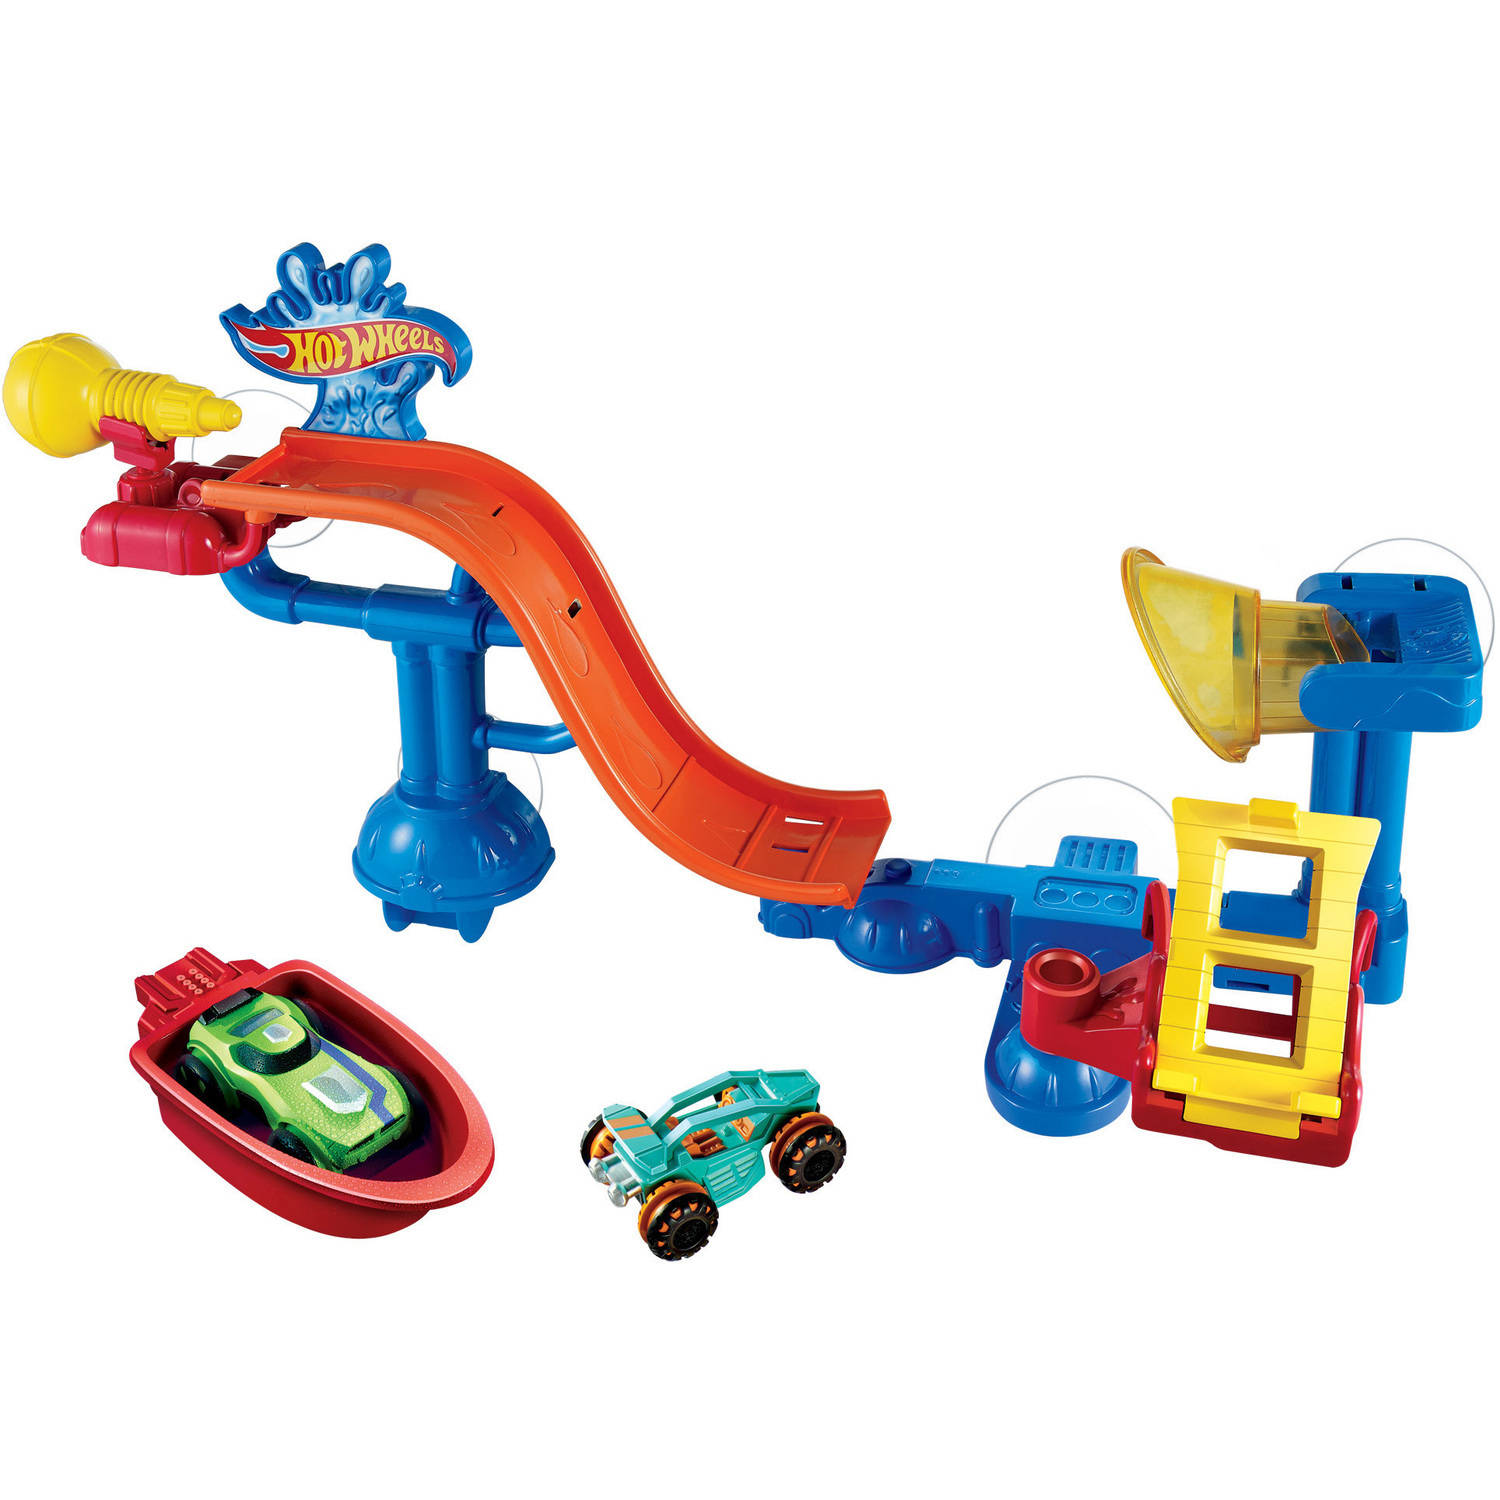 Hot Wheels Splash Rides Splashdown Station Playset